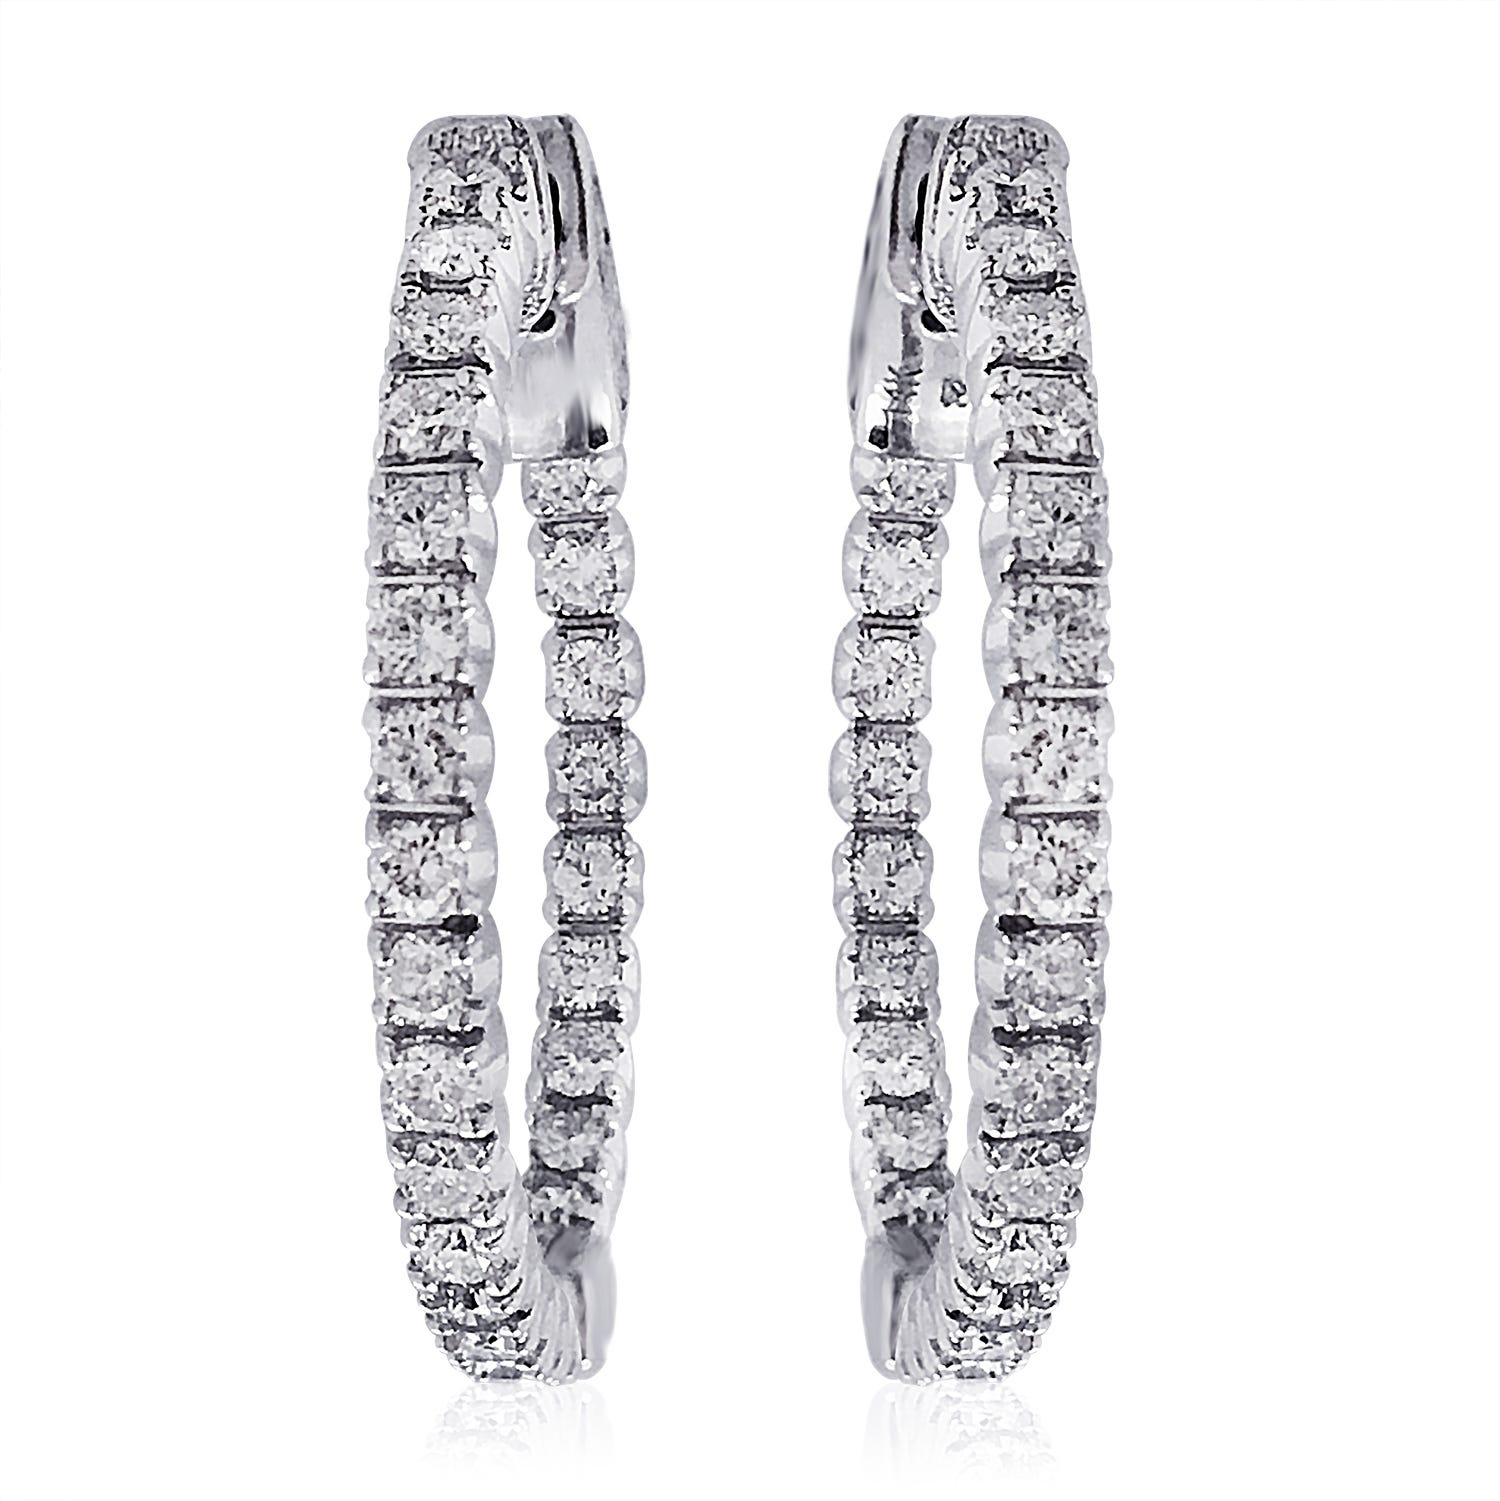 Diamond In and Out Hoop Earrings 1ctw in 14K White Gold